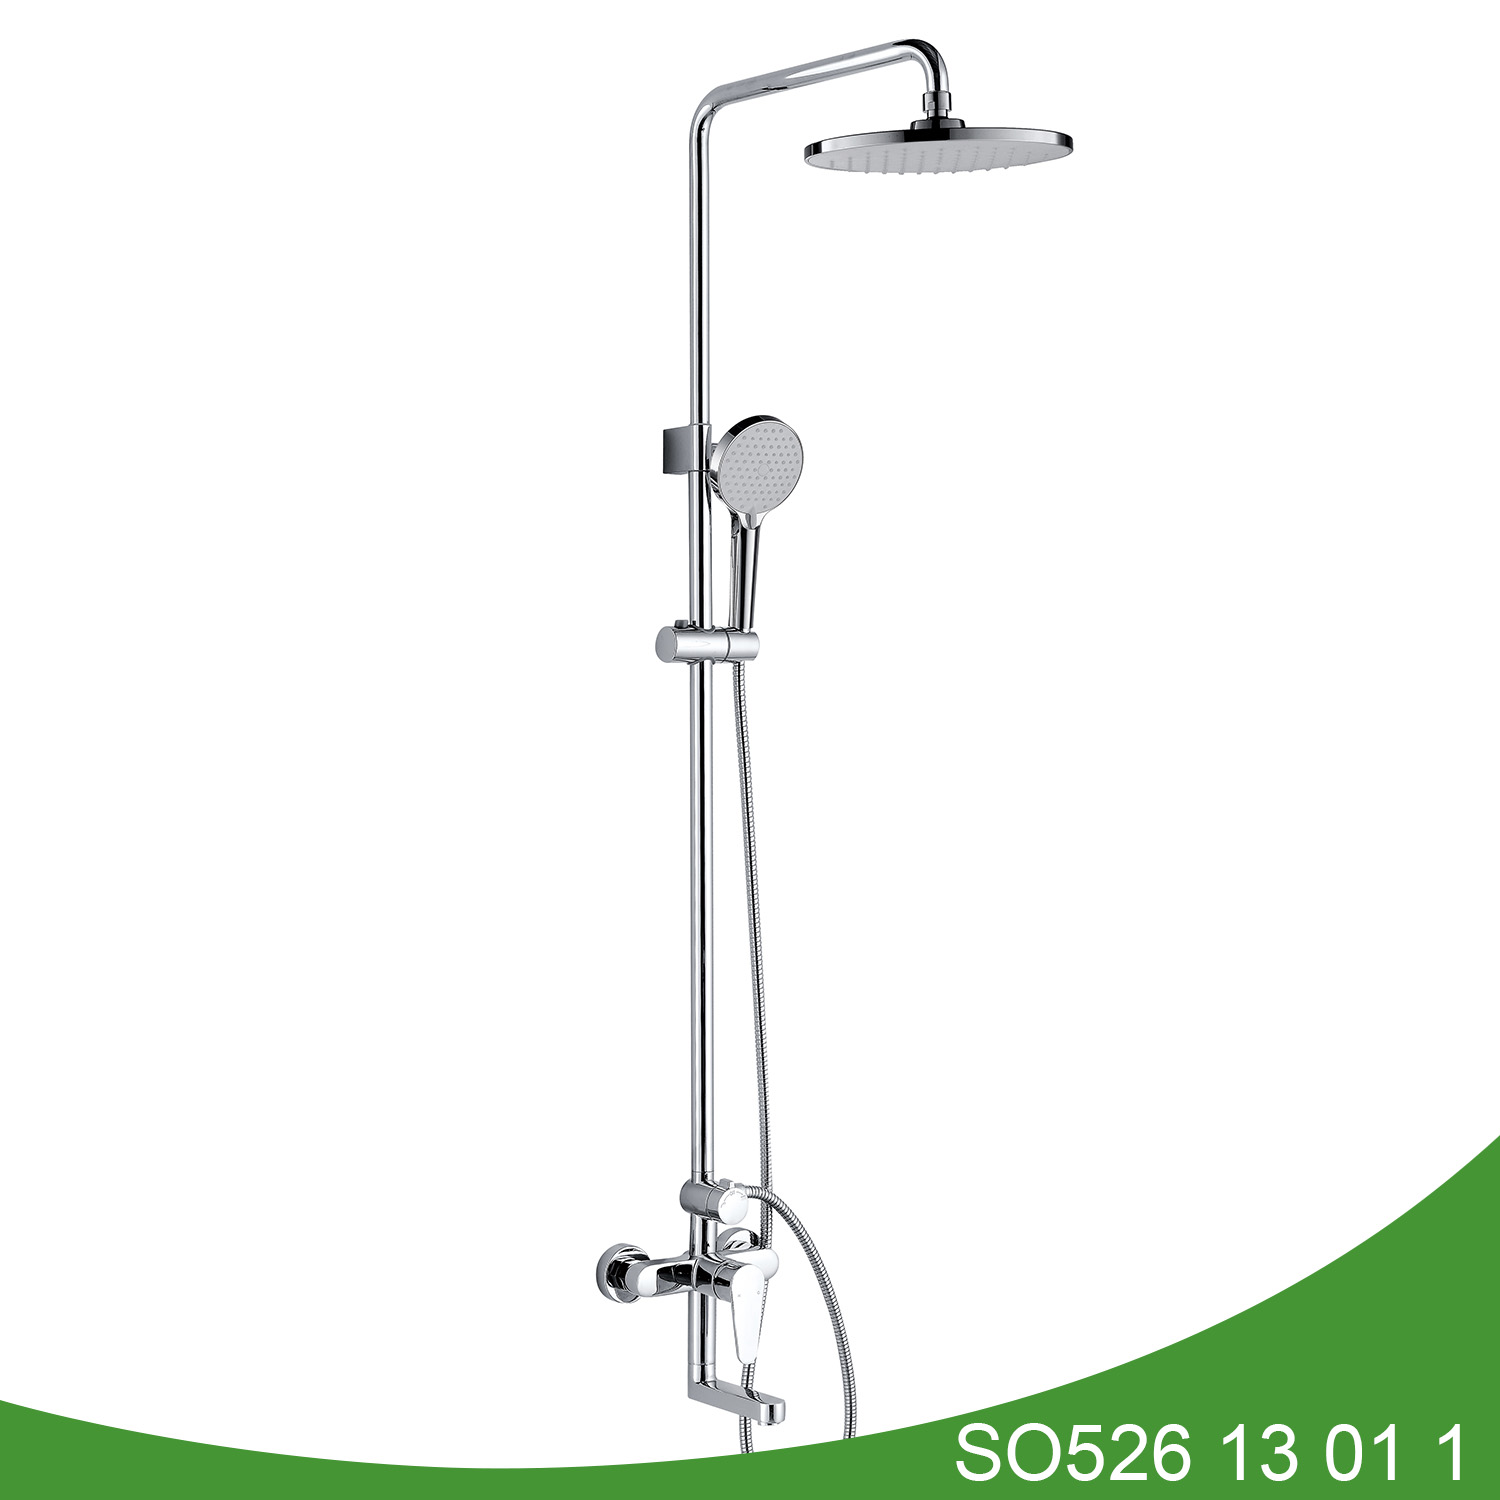 Exposed three function shower set SO526 13 01 1